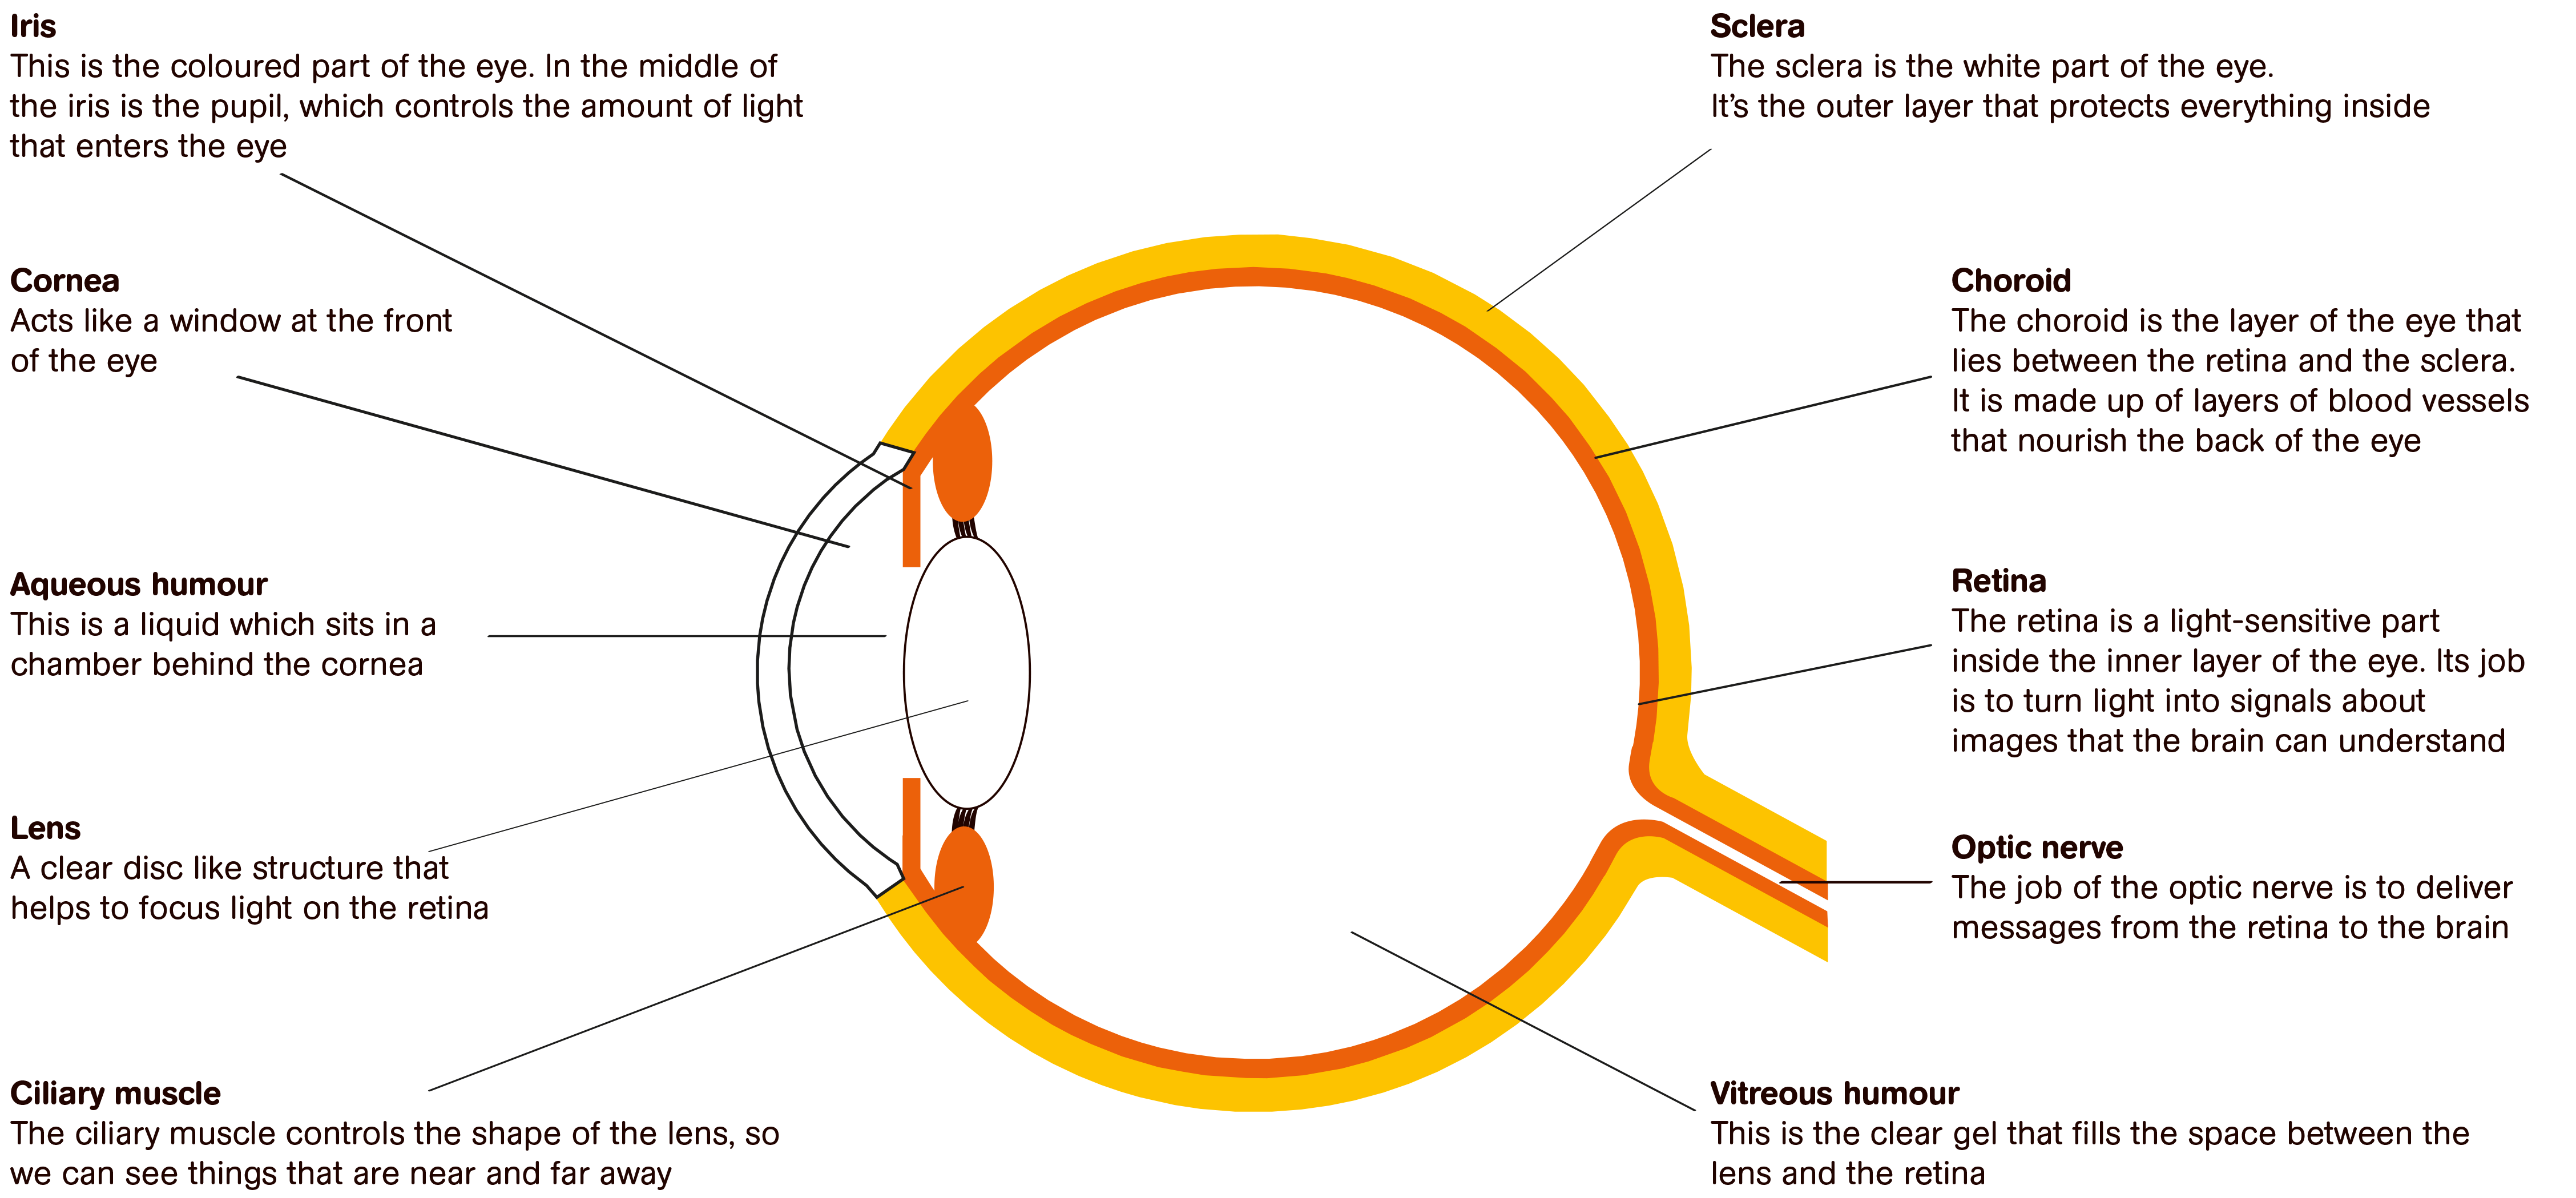 Graphic Of An Eye With Information About Its Different Parts Ngo